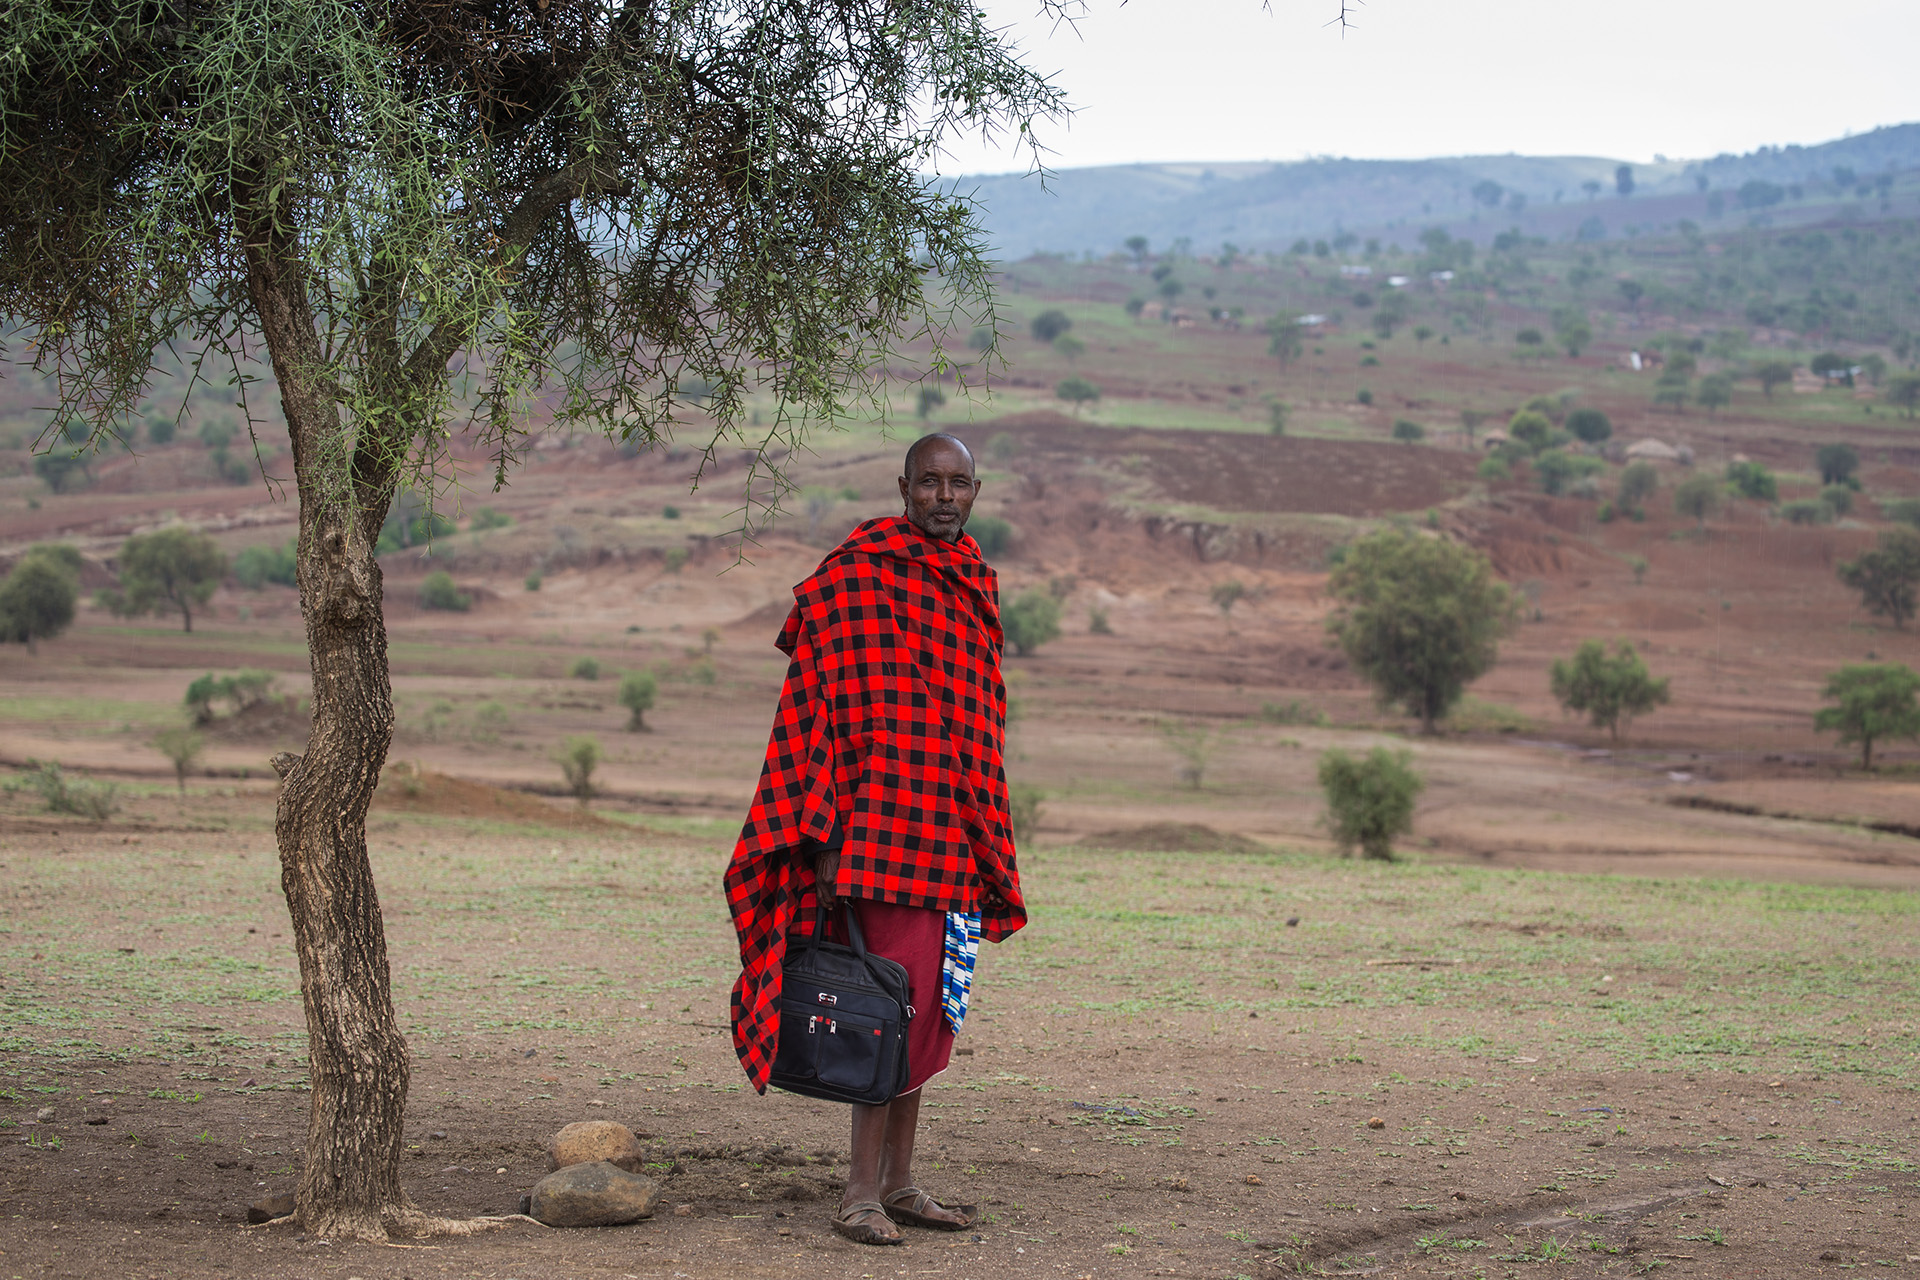 This photograph shows a Maasai pastoralist standing for a portrait with his briefcase following our interview. He works with his cattle in the fields behind him, which show deep trenches falling away from the land caused by soil erosion. 'Five years has shown extreme changes' he informs me sadly.